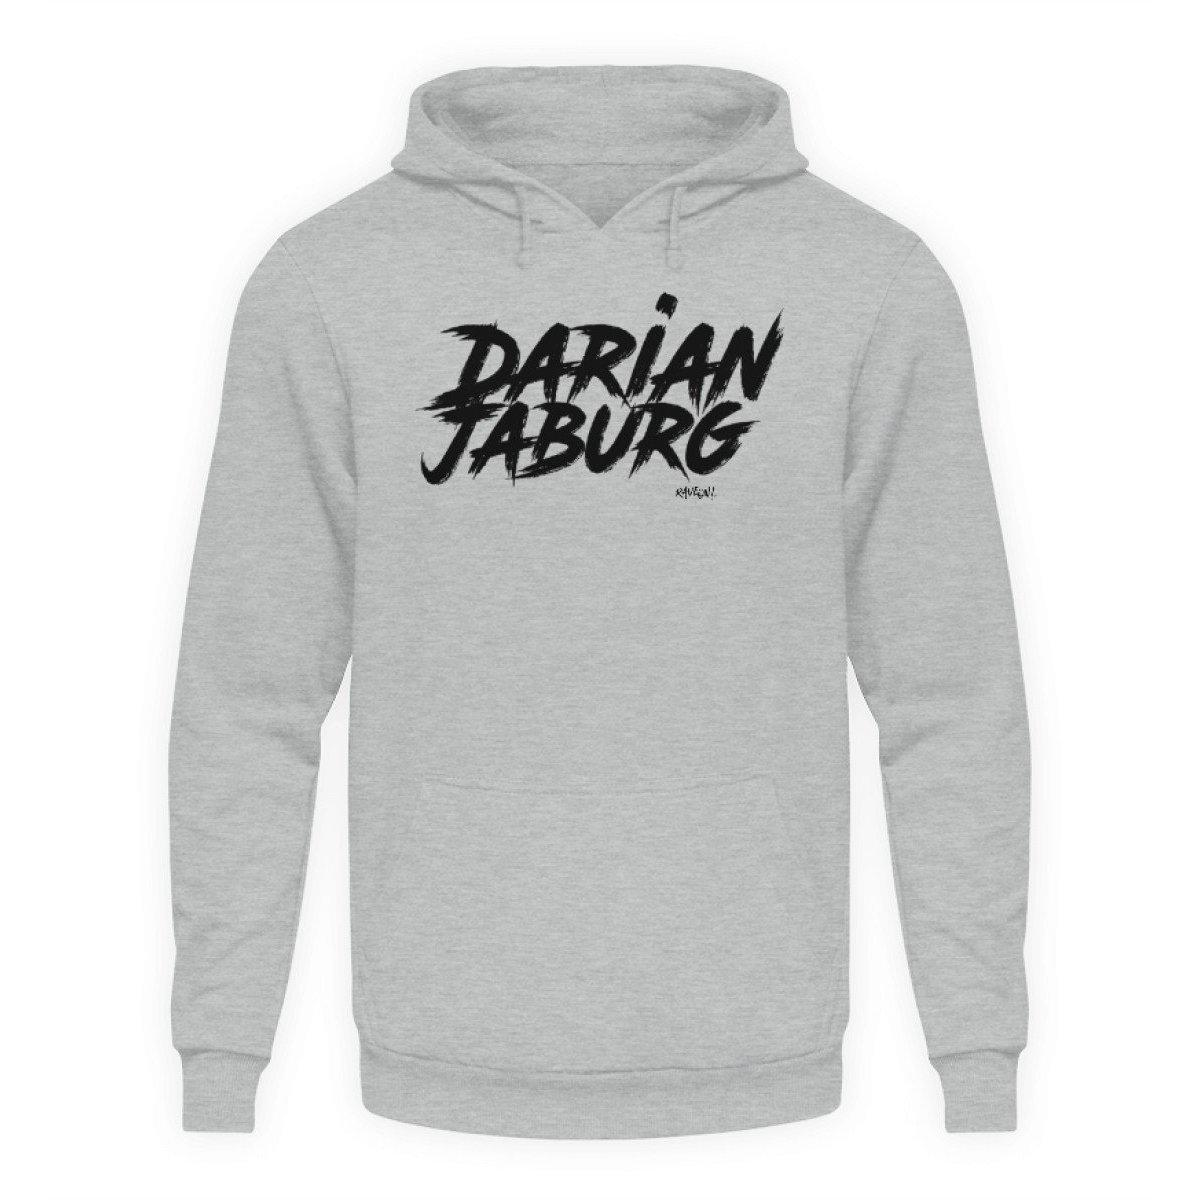 Darian Jaburg - BS Rec.White - Rave On!® - Unisex Kapuzenpullover Hoodie Unisex Hoodie Heather Sport Grey / L - Rave On!® der Club & Techno Szene Shop für Coole Junge Mode Streetwear Style & Fashion Outfits + Sexy Festival 420 Stuff